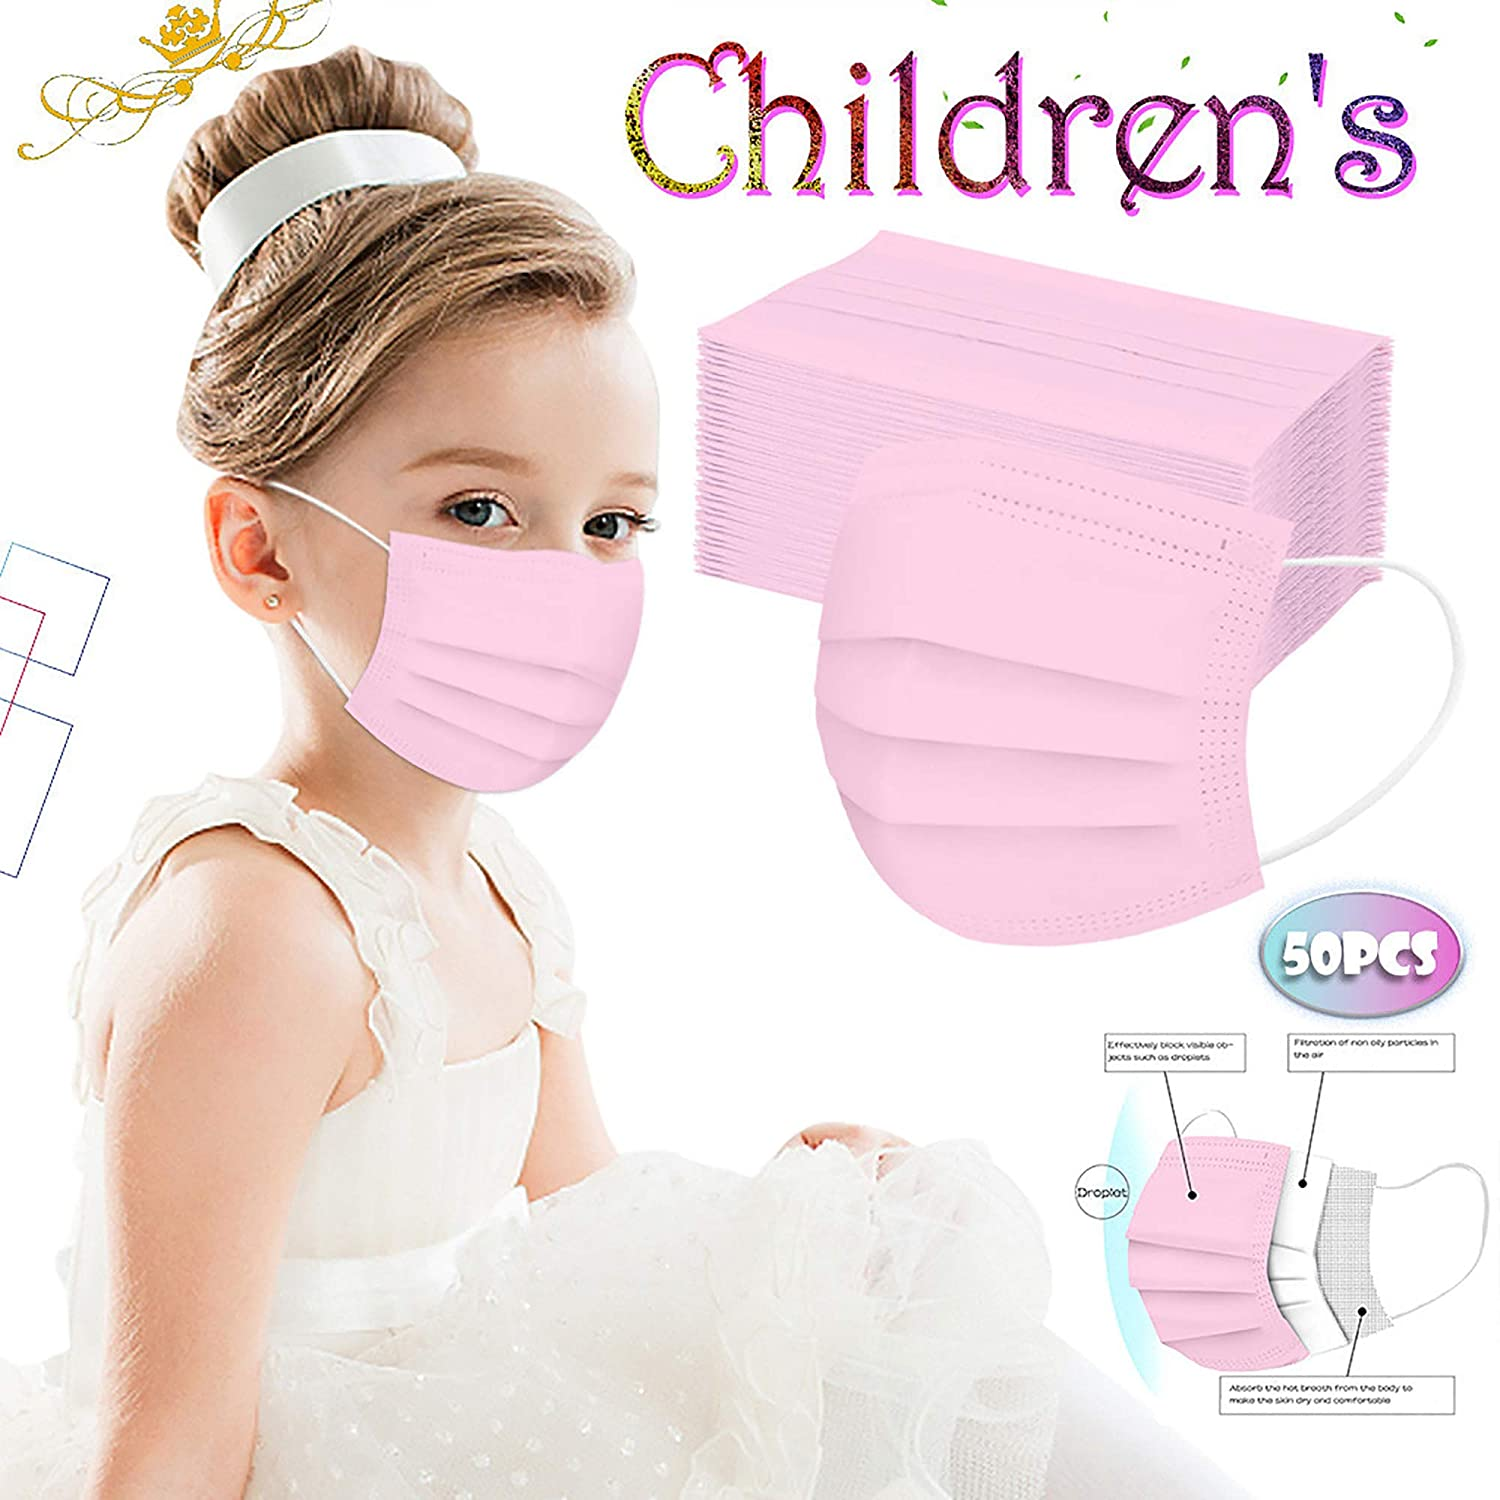 50 Pcs Kids Disposable_Face_Masks for Protective, 3 Ply Face_Masks for Girls Boys, Breathable Comfortable Anti Dust Protective Face Covering with Elastic Earloop for Children (50 Pcs, Pink)